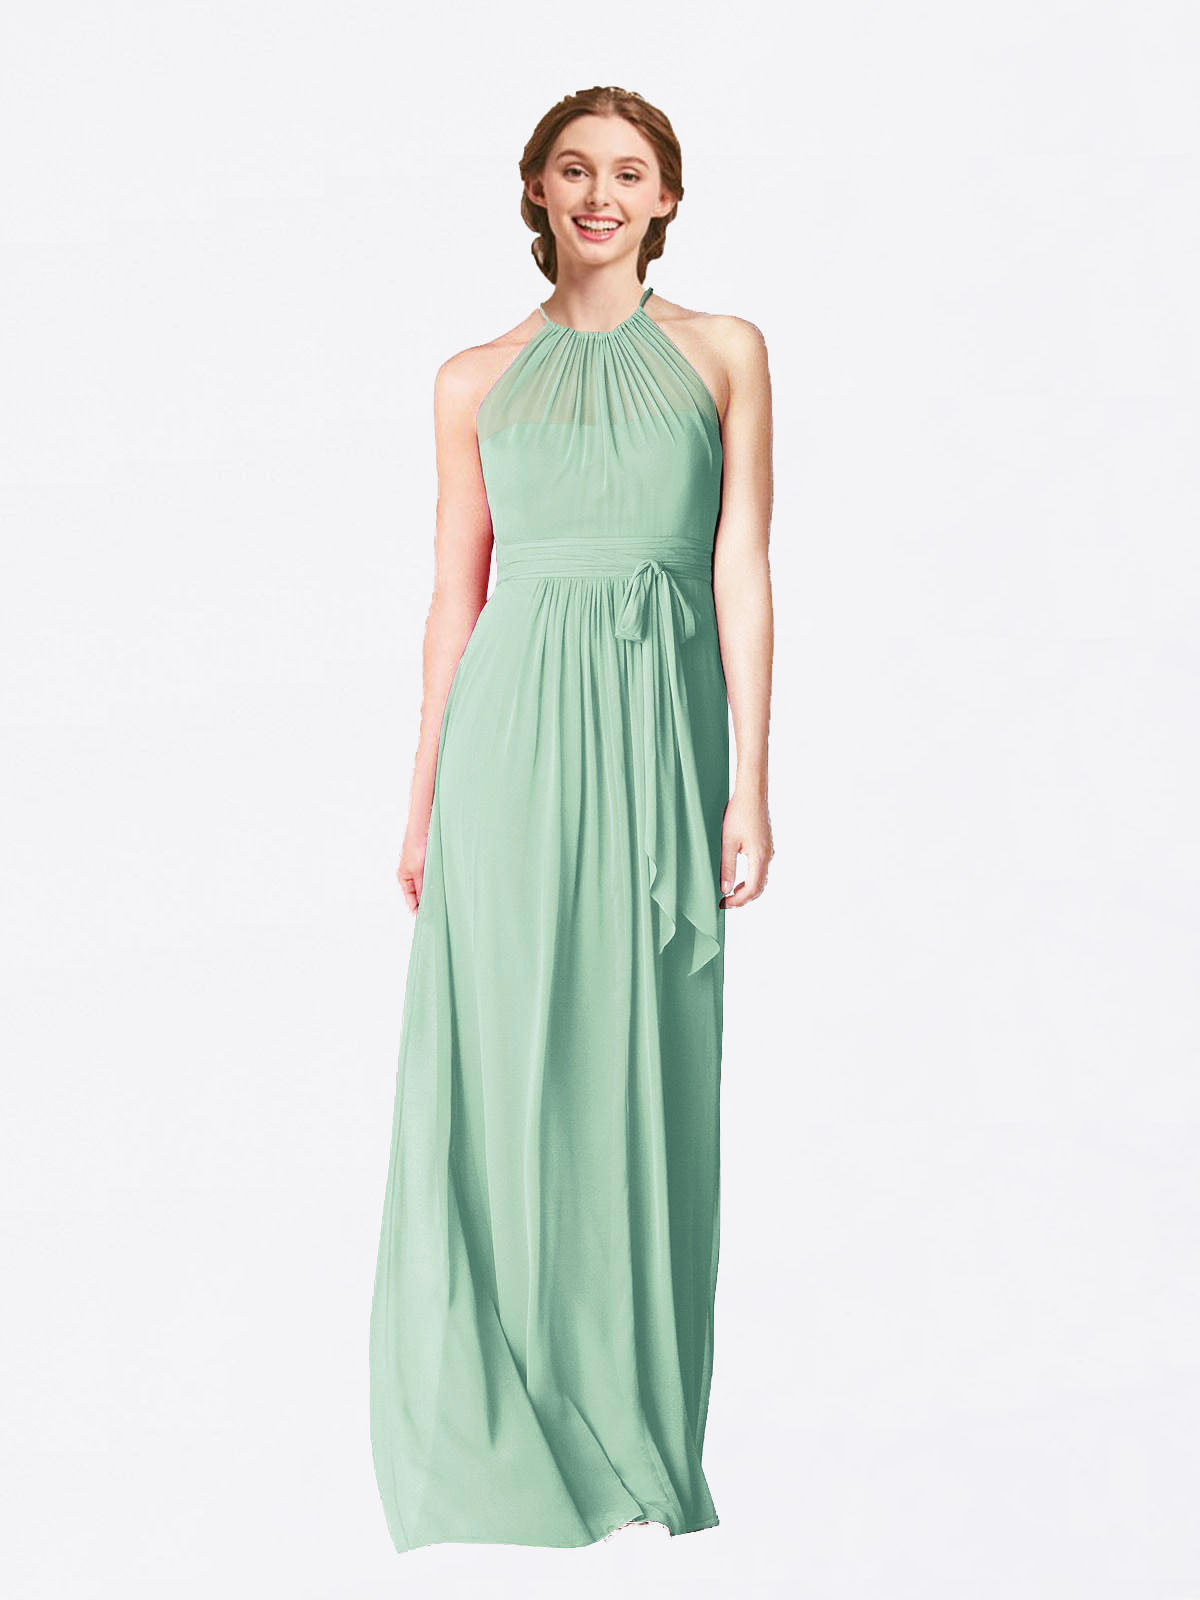 Long A-Line Halter Sleeveless Mint Green Chiffon Bridesmaid Dress Laura